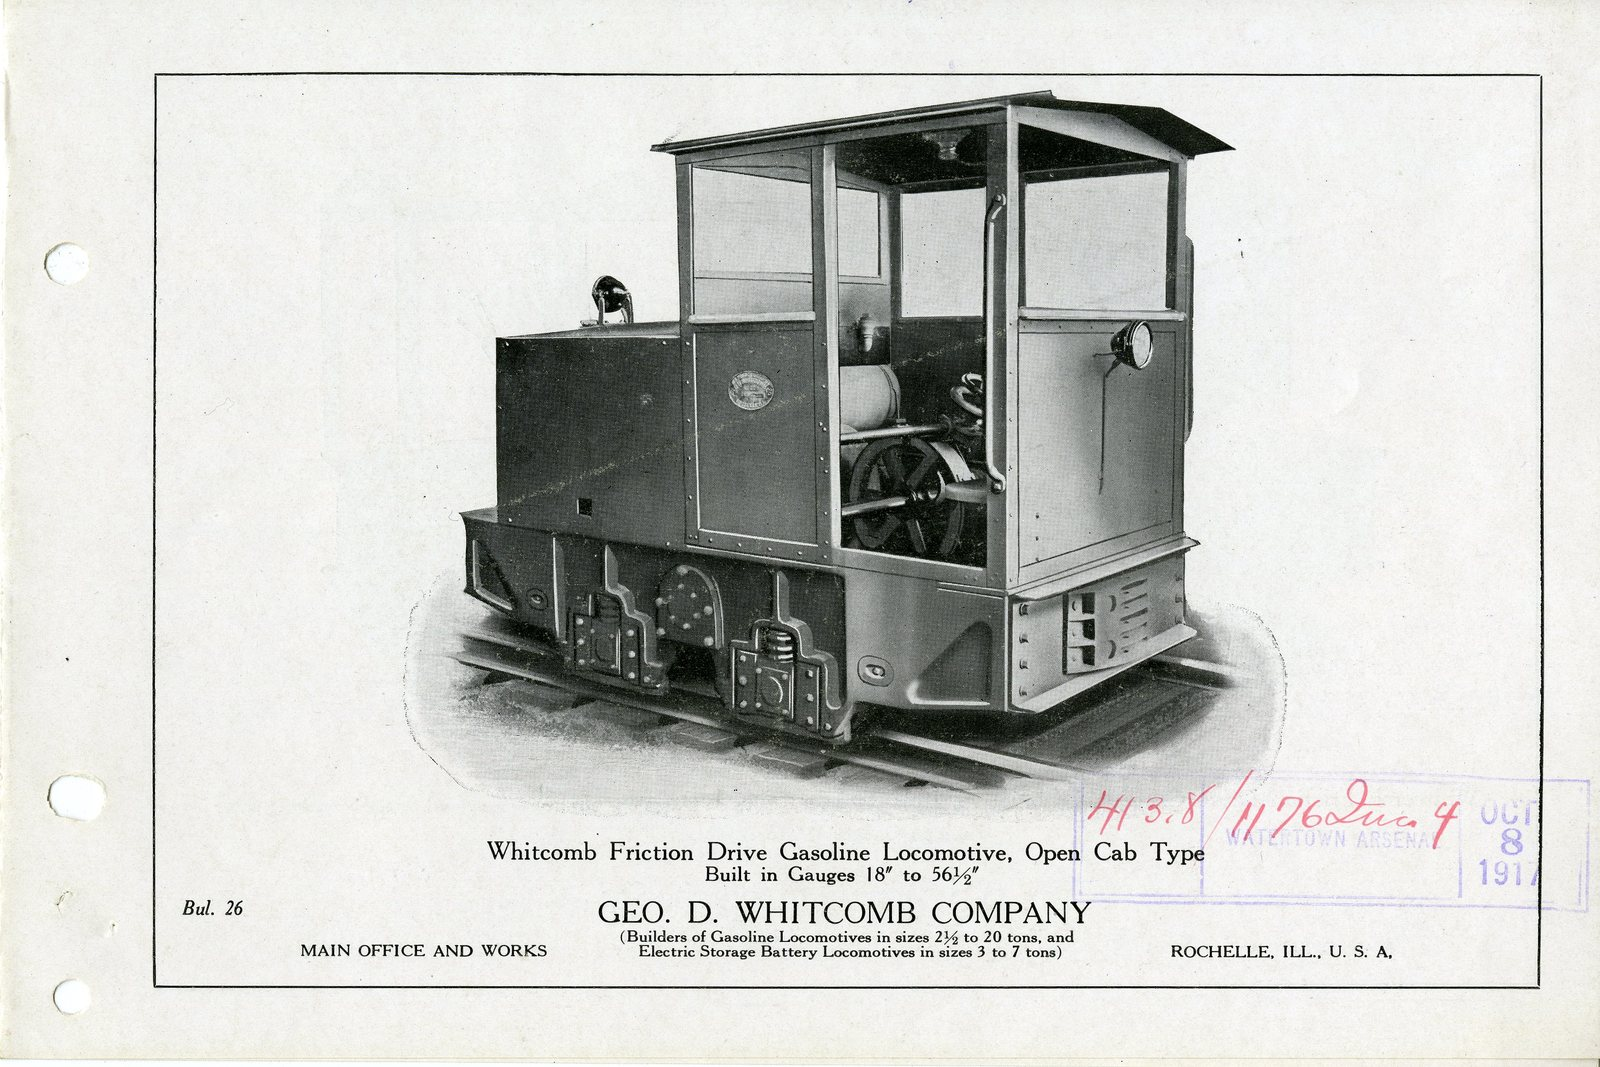 Whitman Friction Drive Gasoline Locomotive, Open Cab Type